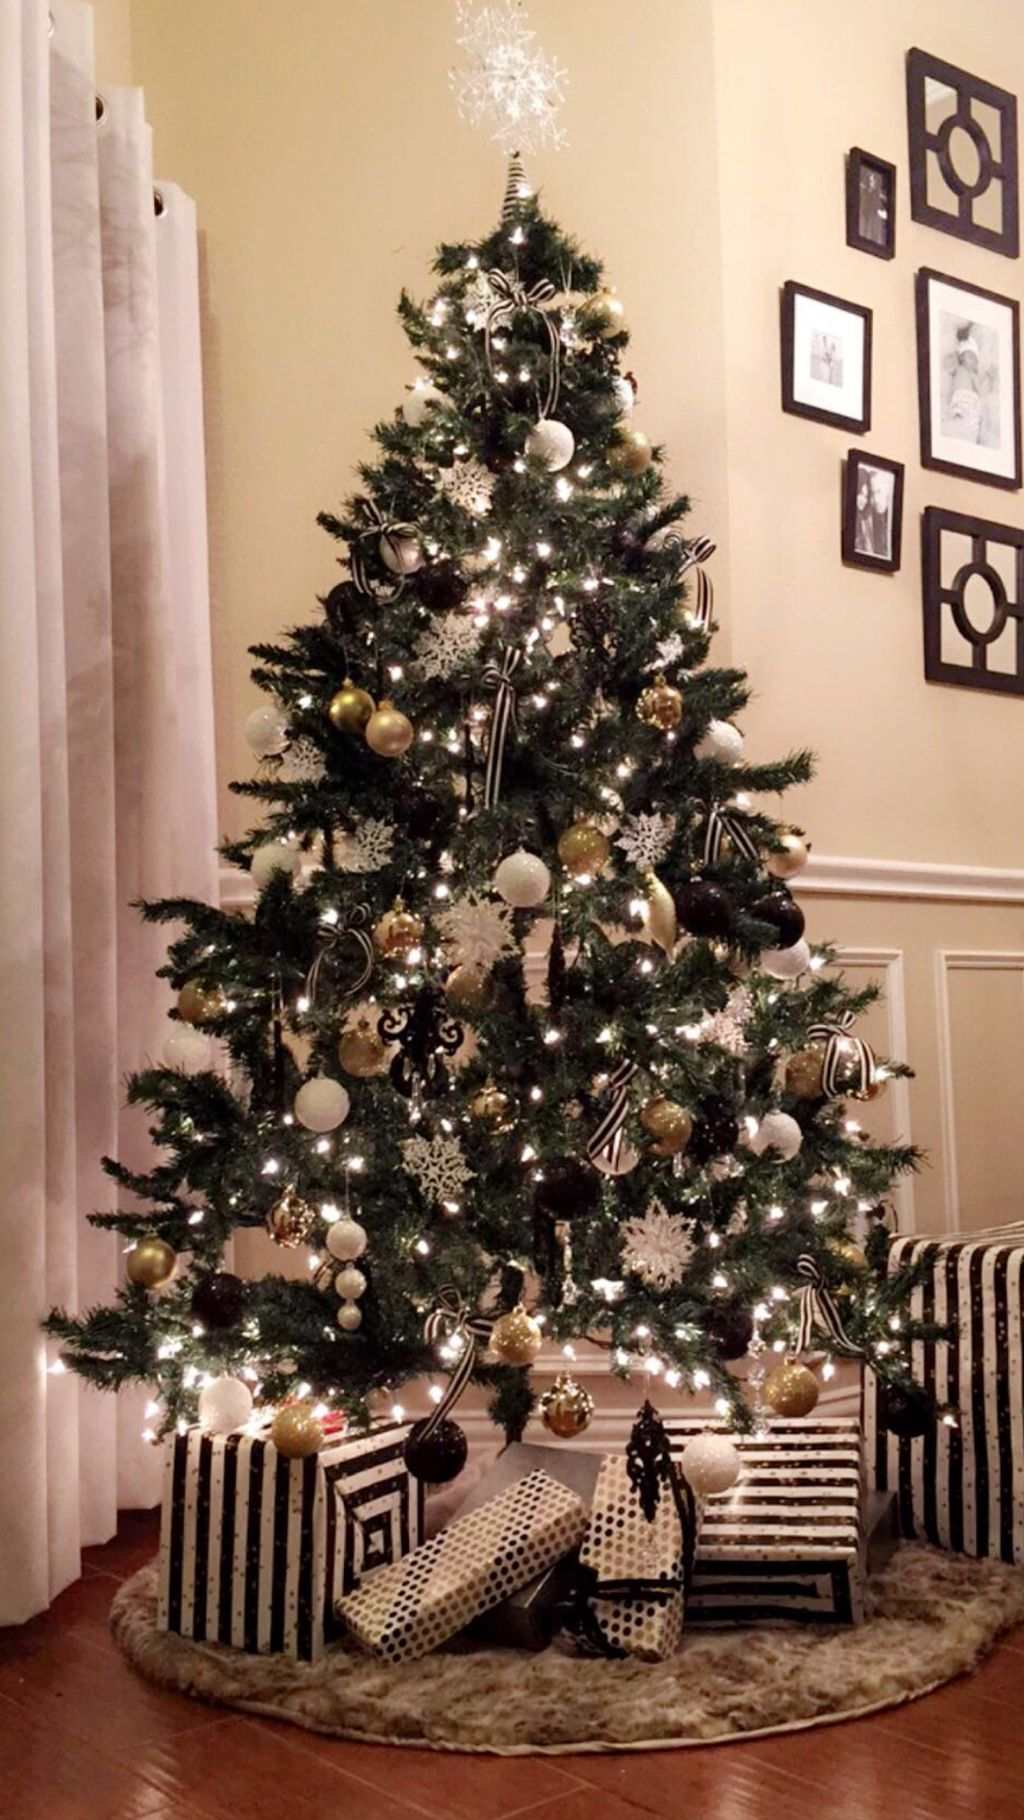 30+ Classy Black And Gold Christmas Decor Ideas #christmastreeideas